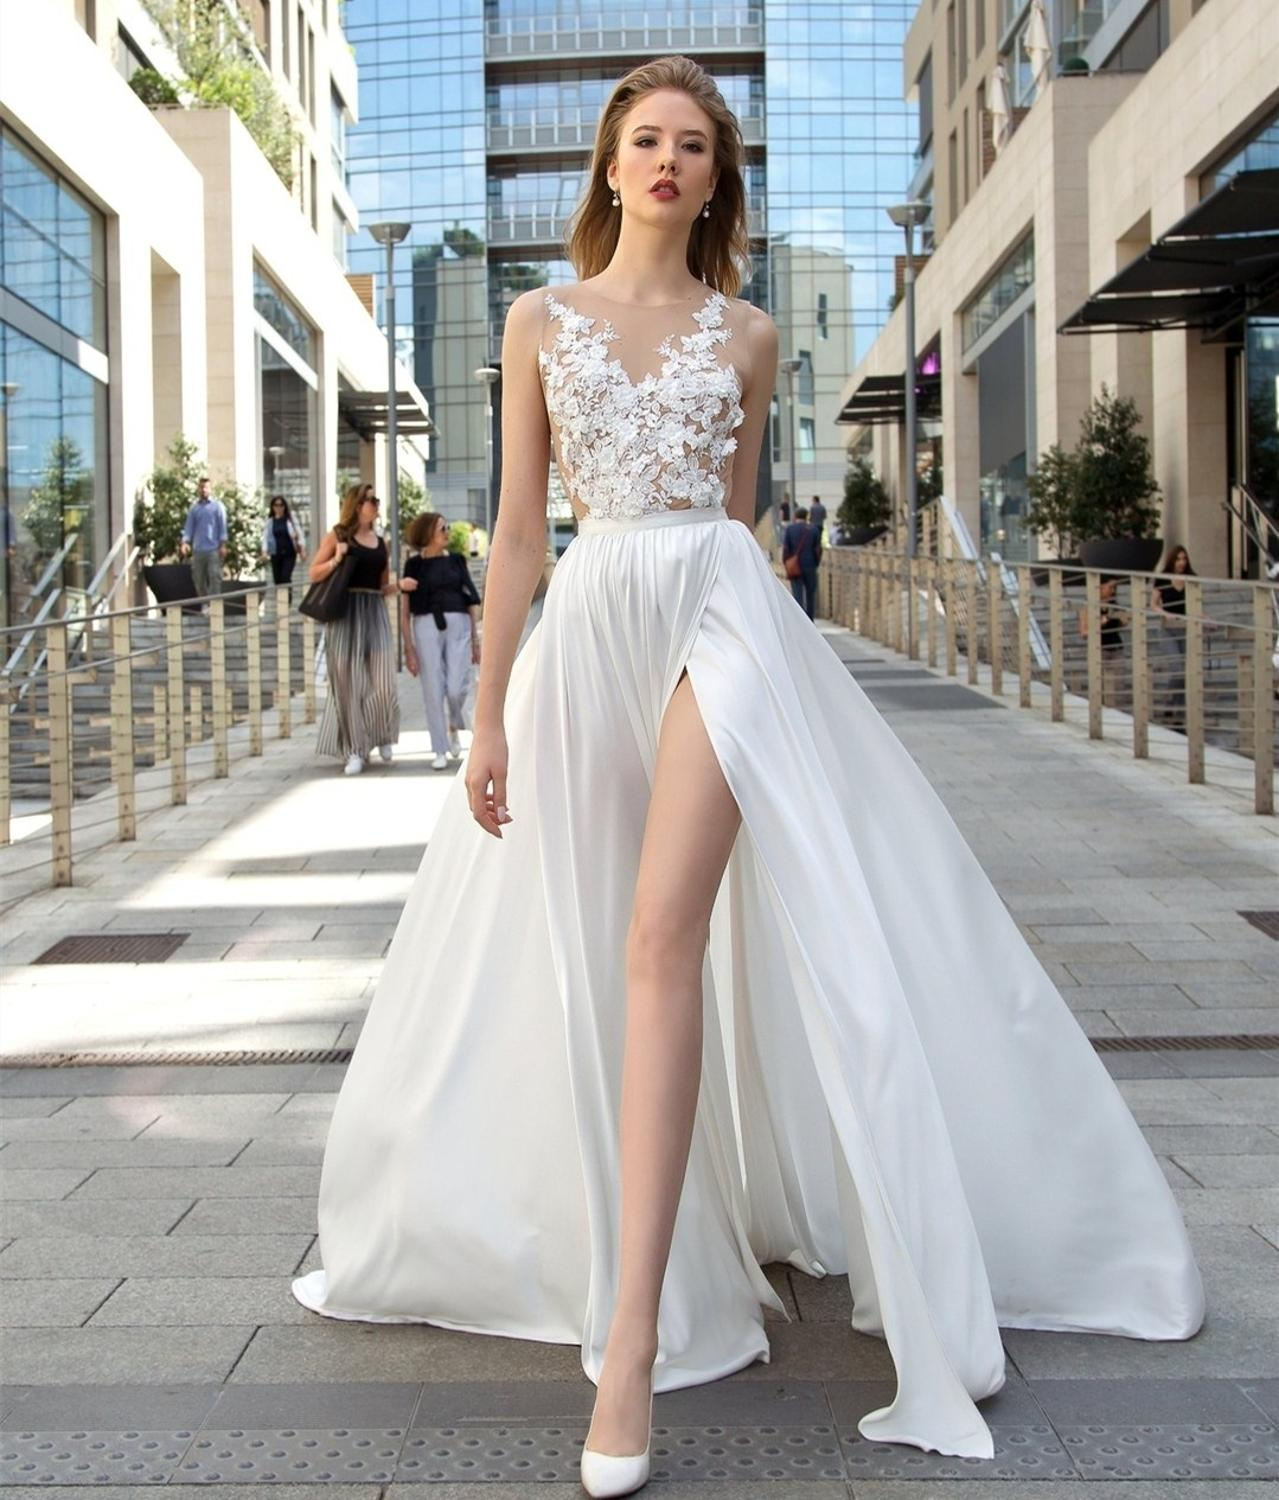 2020 Wedding Dress Scoop Floor Length Chiffon Sleeveless Bridal Gowns Lace Beach Side Slit Rustic Vestidos De Fiesta Largos Ele